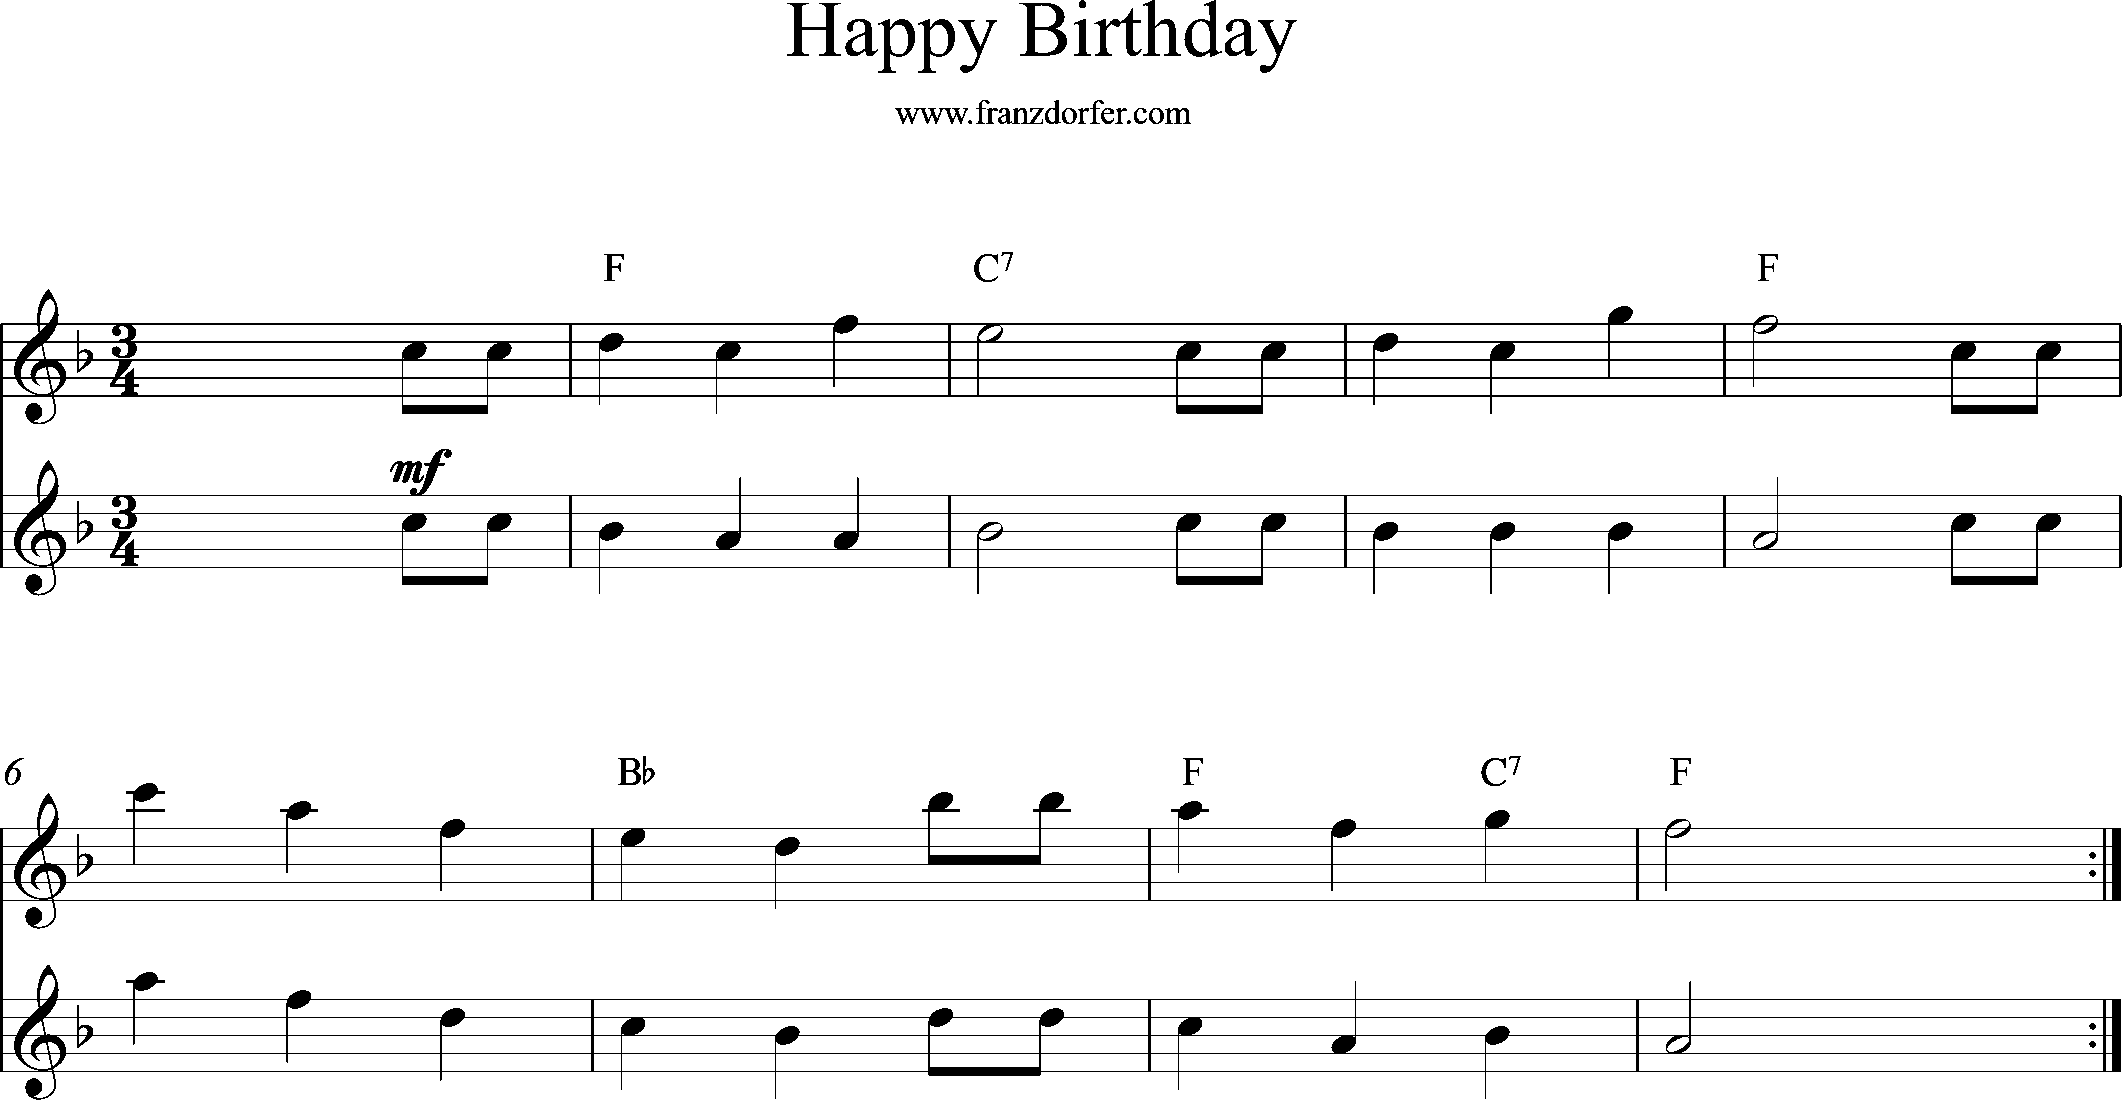 Worksheet Happy Birthday Flute Printable Worksheets And Activities For Teachers Parents Tutors And Homeschool Families